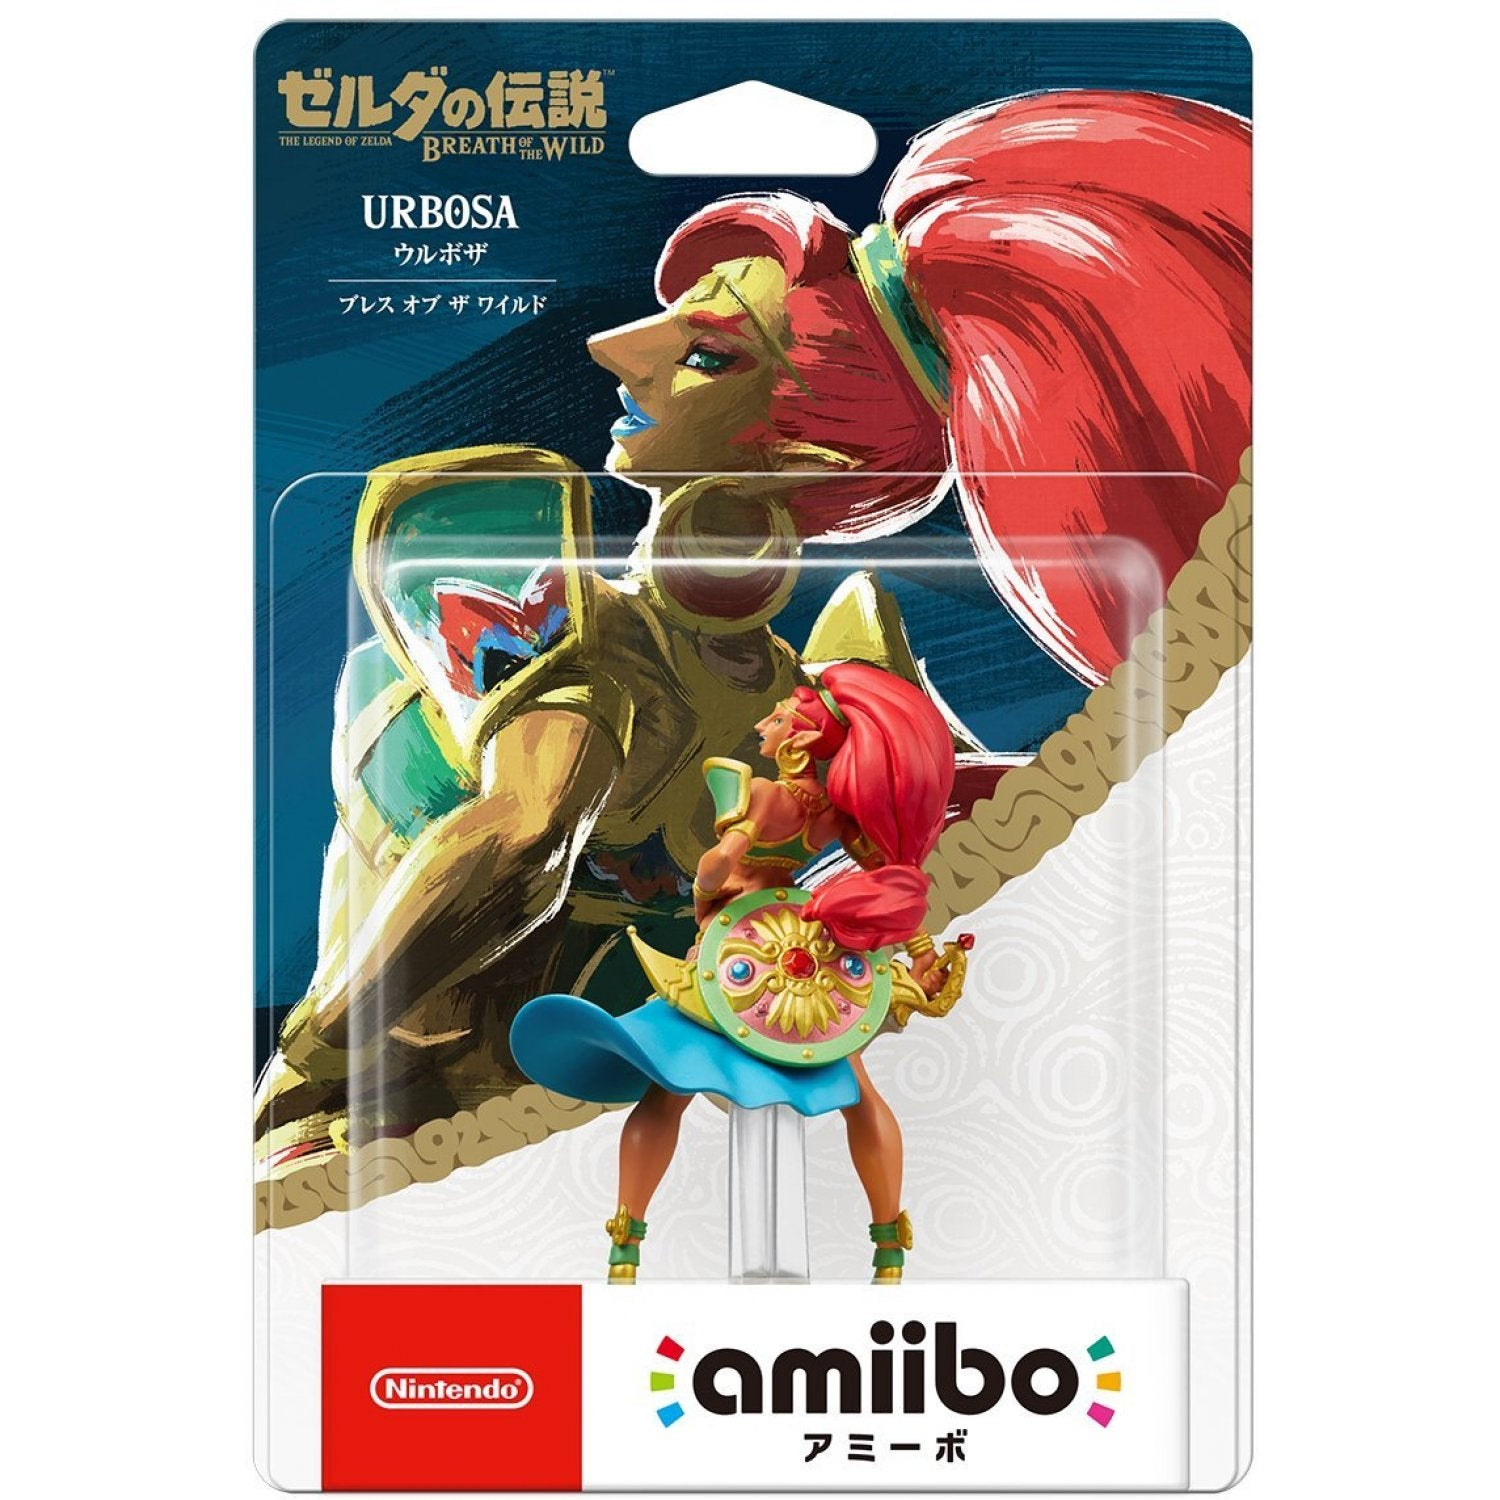 Amiibo The Legend of Zelda: Breath of the Wild Series Figure (Urbosa)